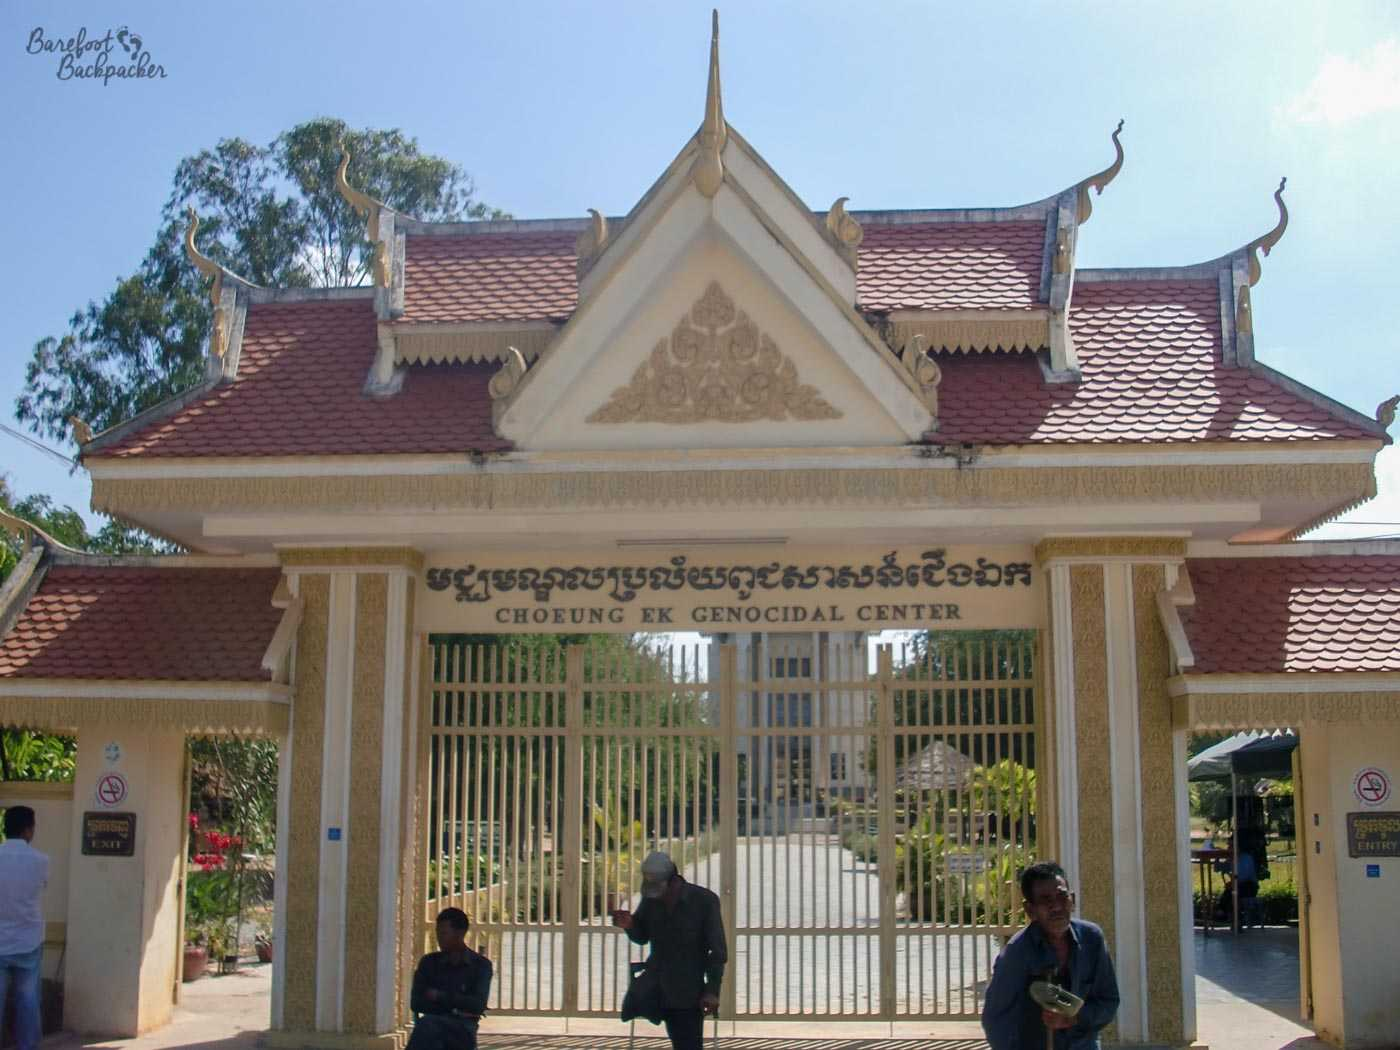 The entrance to Choeung Ek – The Killing Fields. It has the feel of a Buddhist temple in design, with multiple sloping roofs and triangles. Behind the gate is a straight road leading to a 'stupa'.